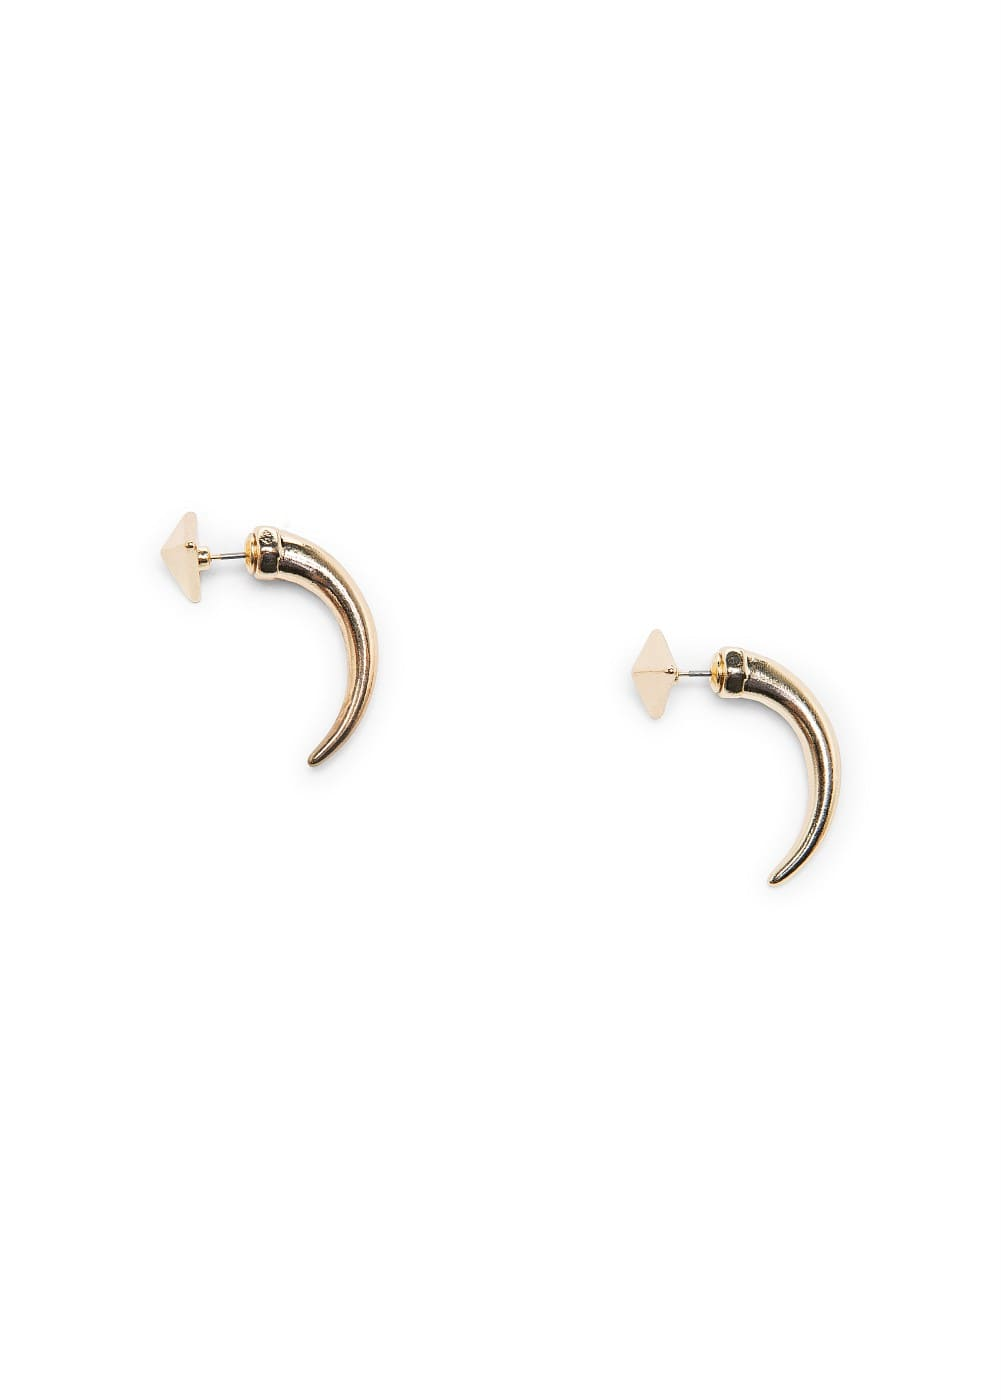 Metal horn earrings